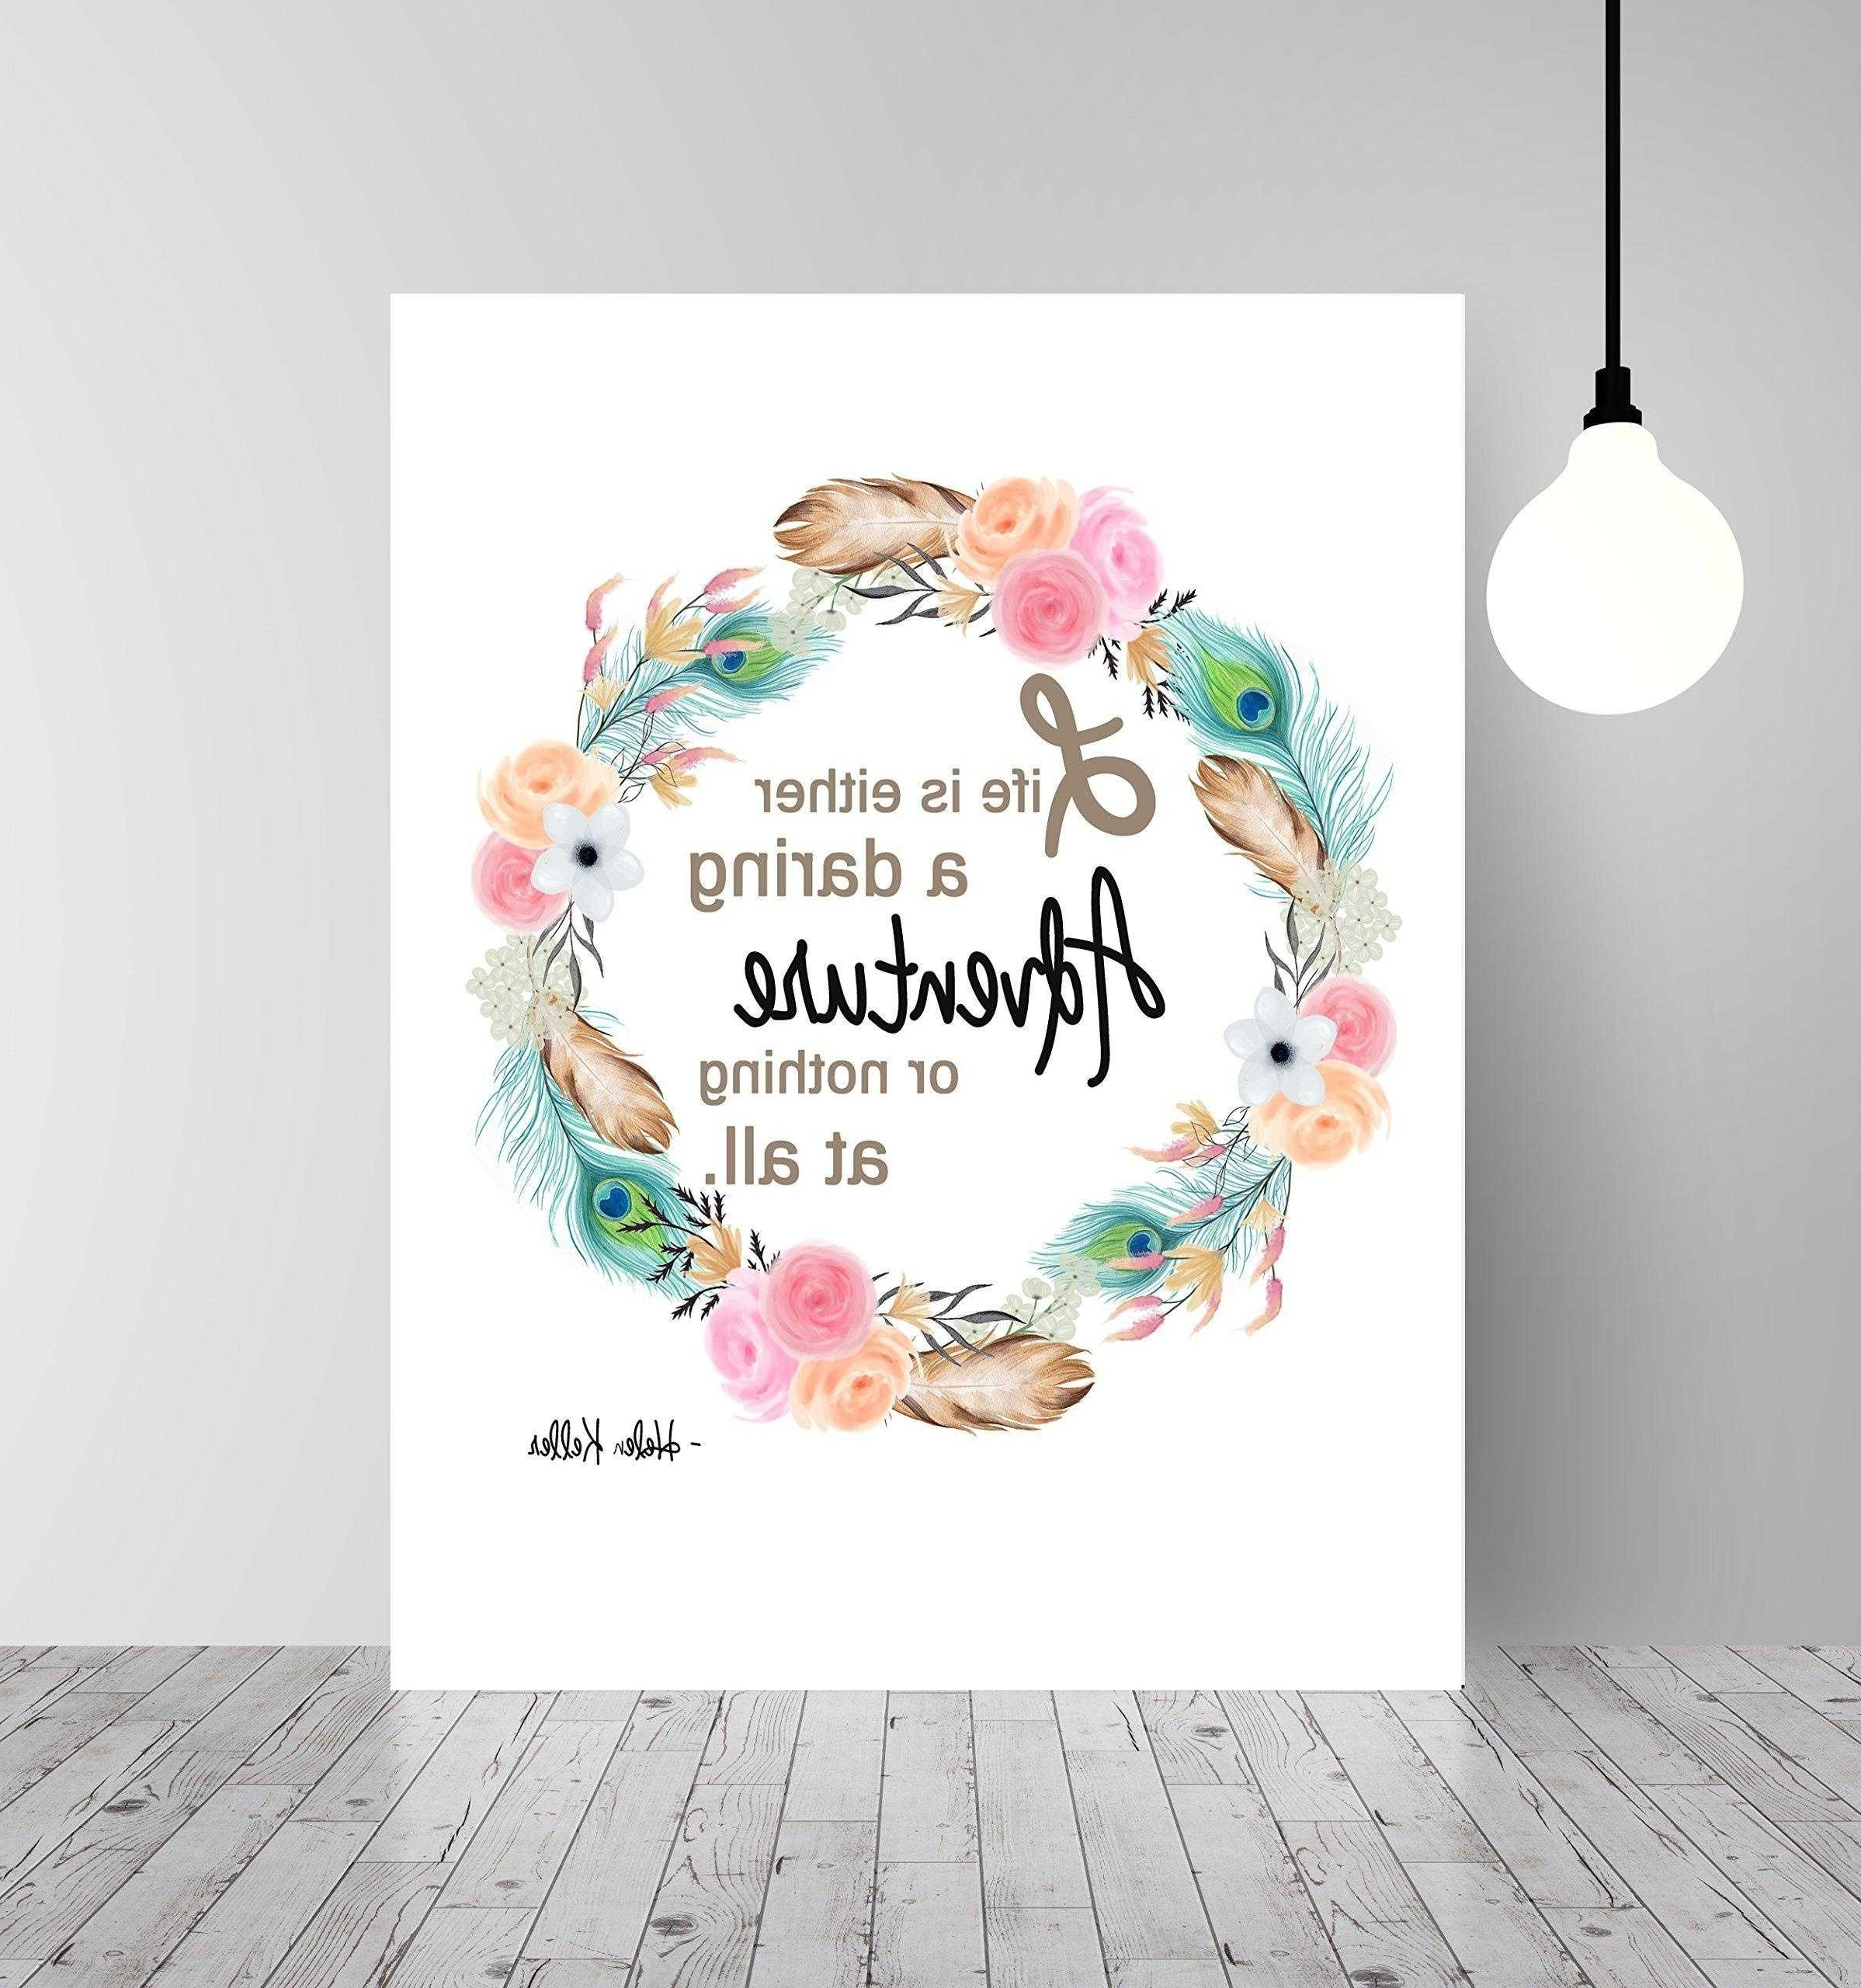 Inspirational Wall Art For Girls Within Newest Inspirational Wall Art – Rpisite (Gallery 1 of 15)